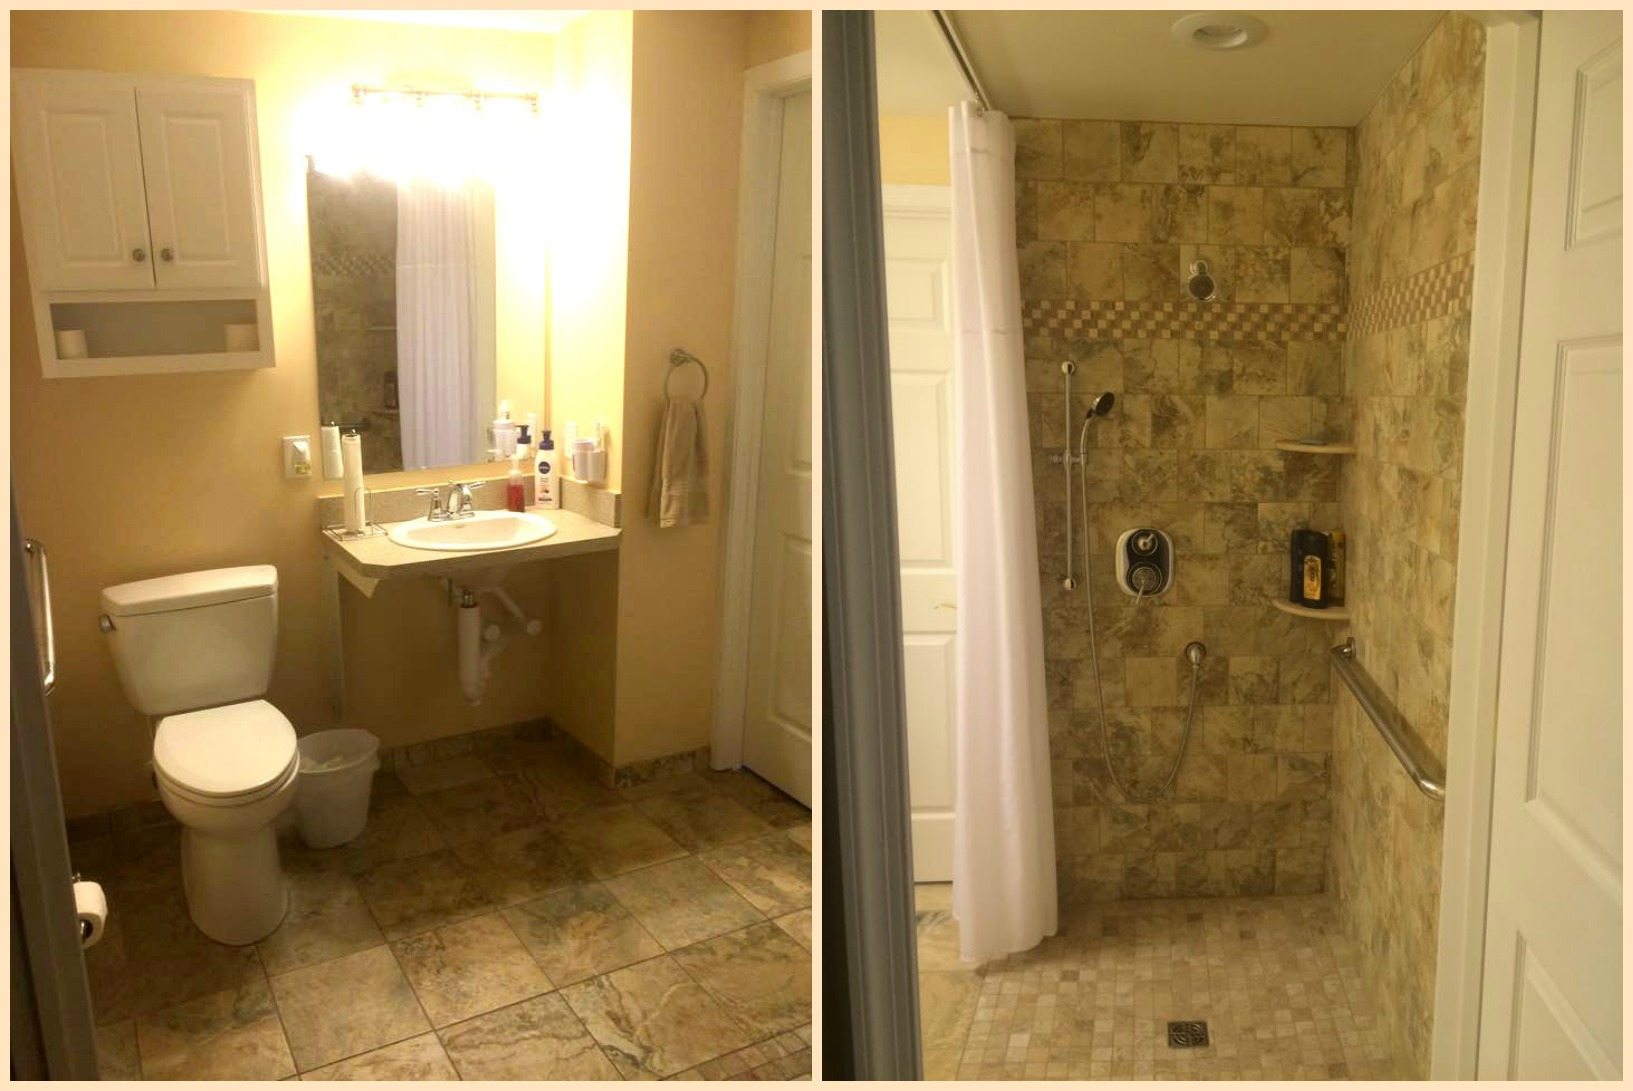 Amanda Shares Her Bathroom Solution For Her Son And Comments, U201cI Had Our  Main Floor Half Bathroom Converted Into A Full Handicap Accessible Bathroom  For My ...